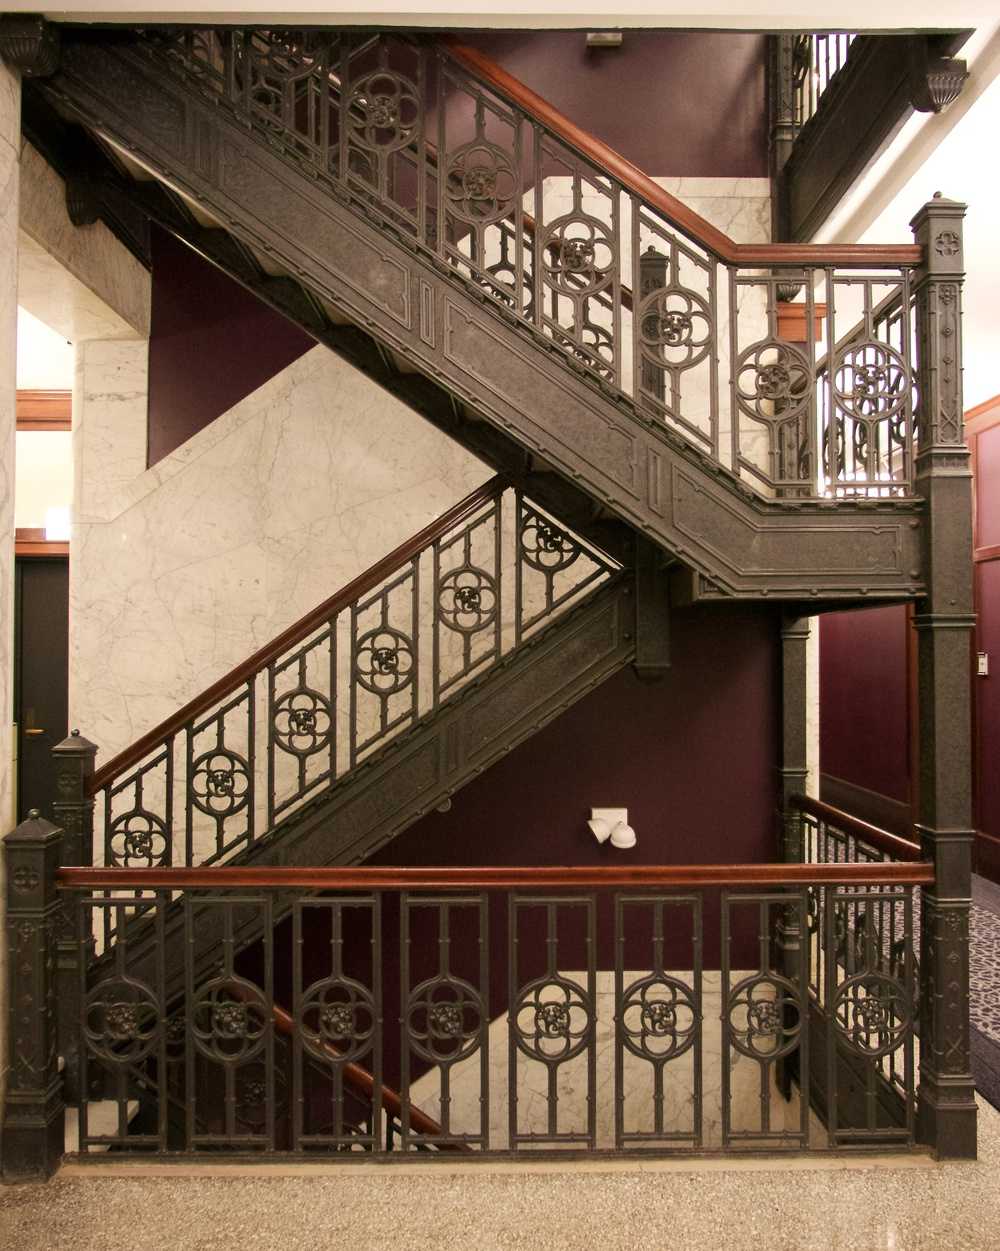 Stairs in the Reliance building